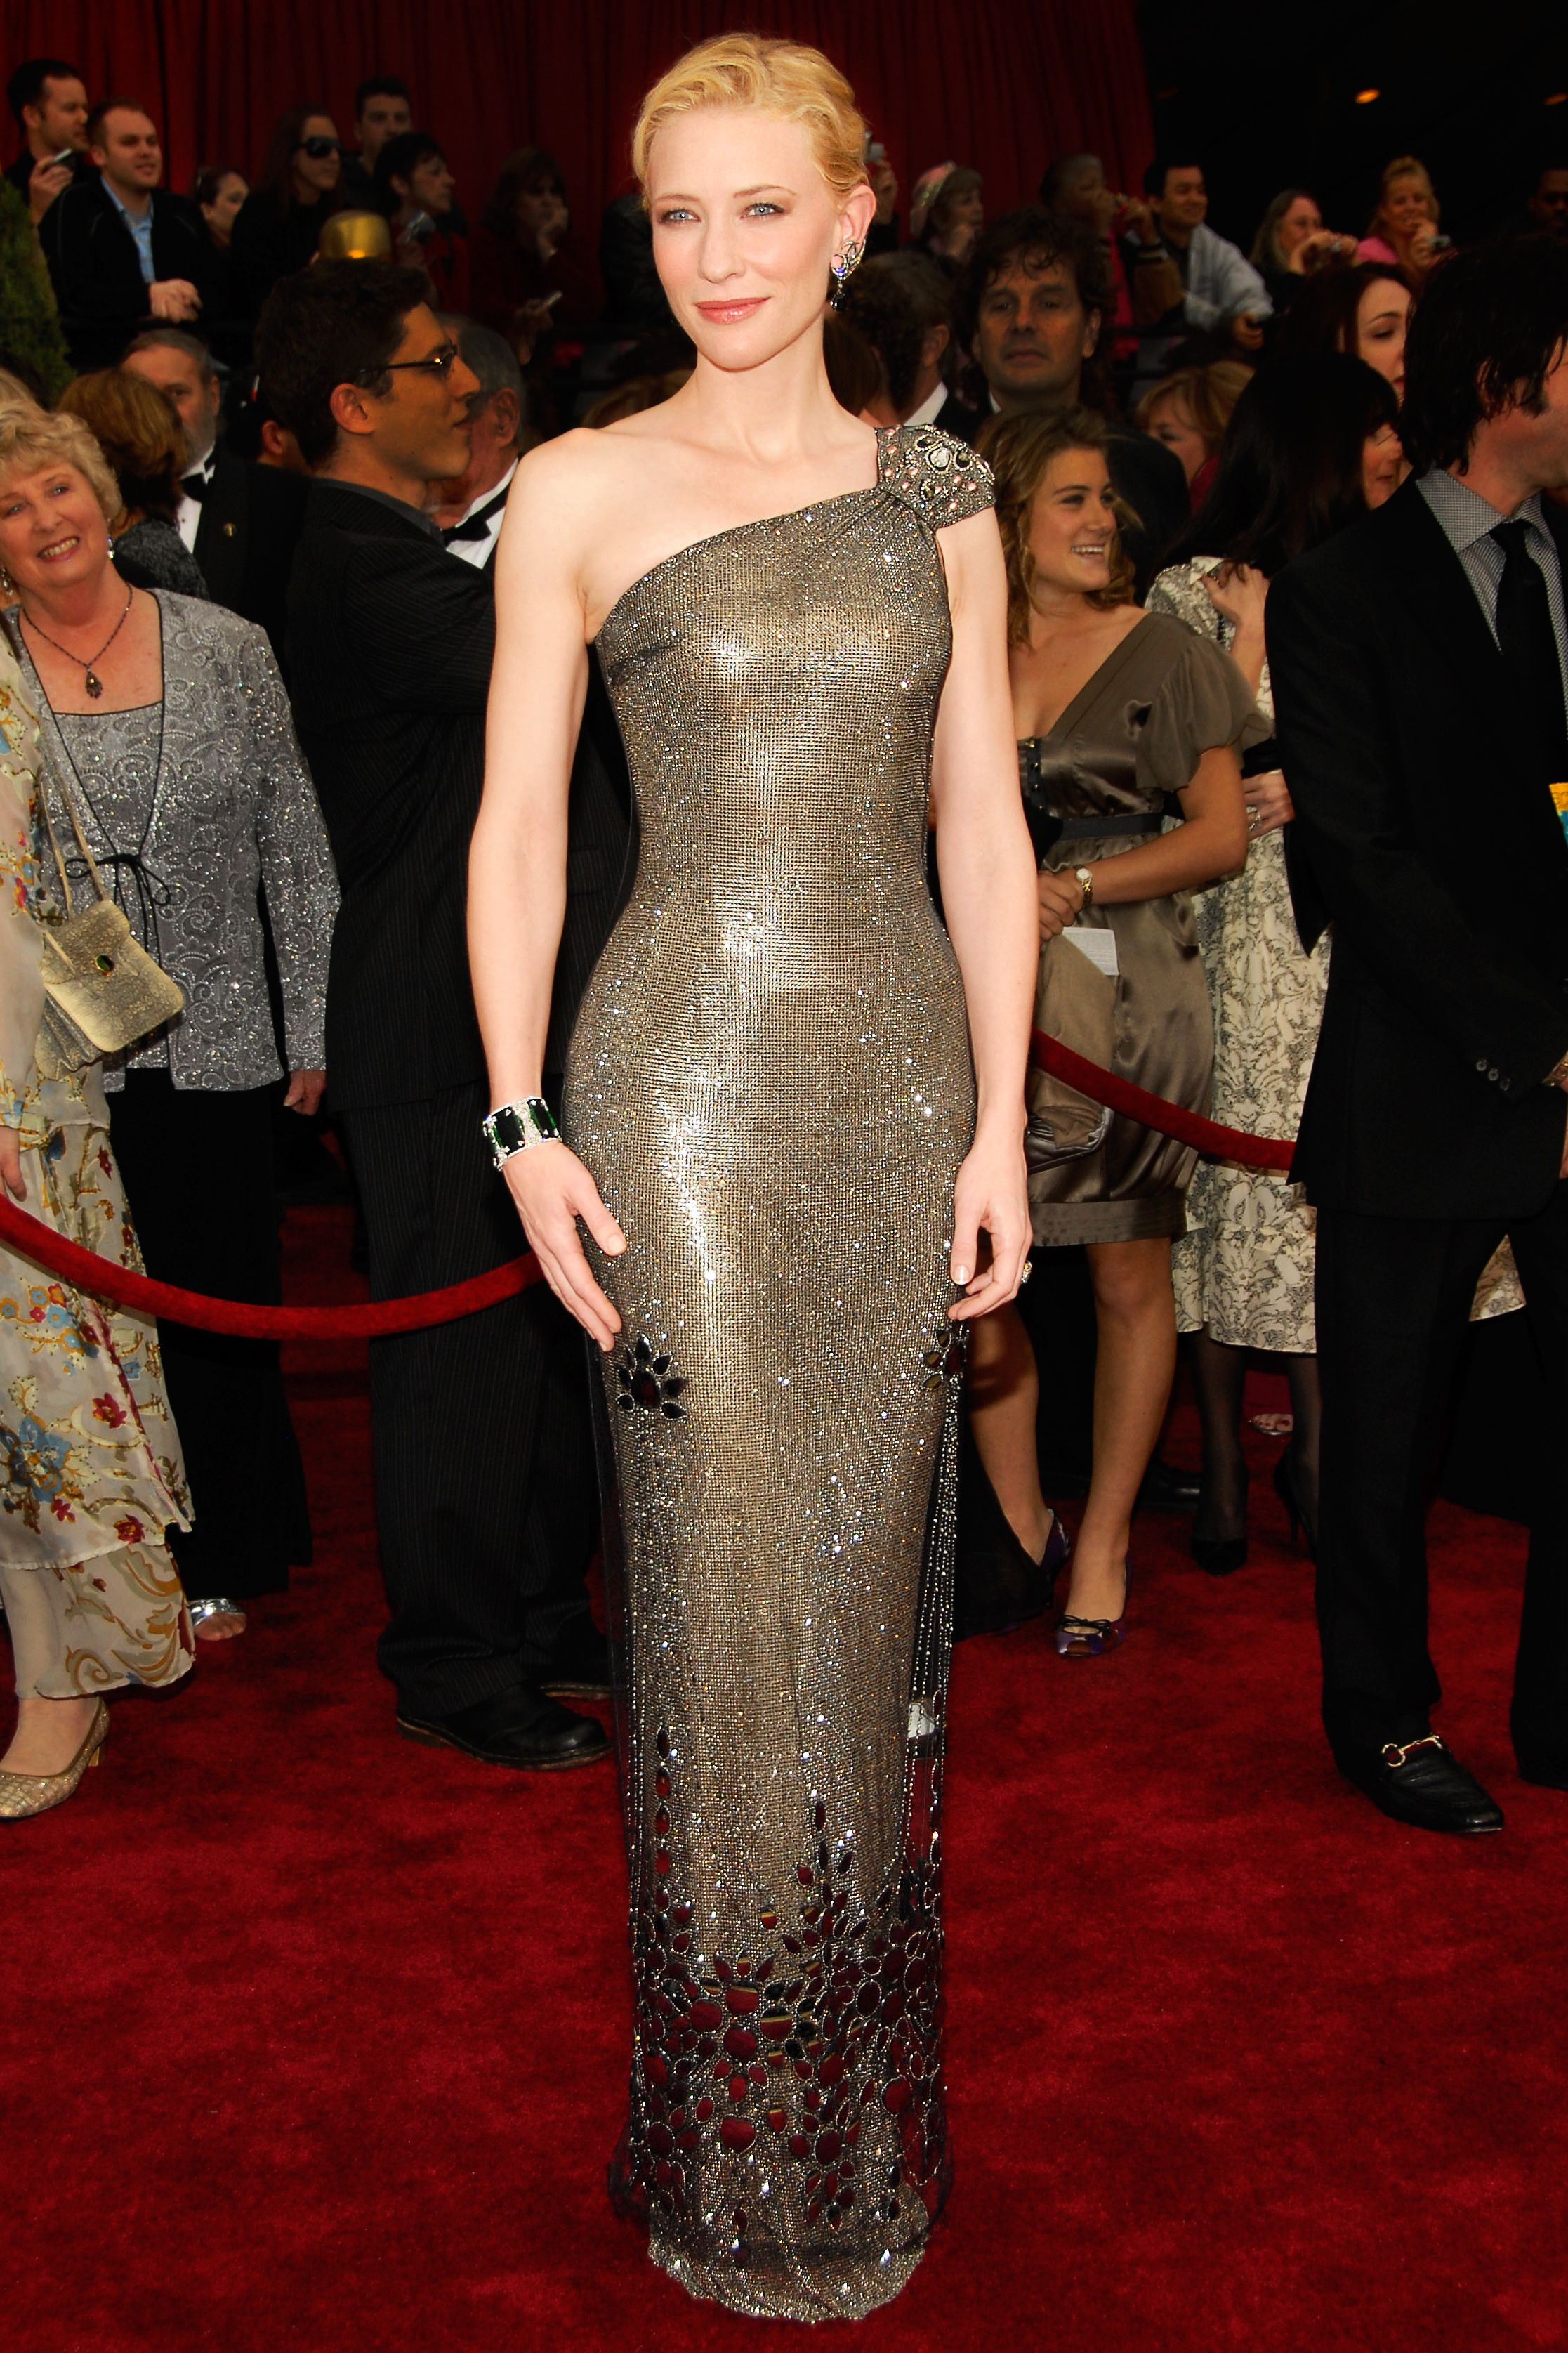 Cate Blanchett s Red Carpet Style - In Armani Prive 8554212ed216